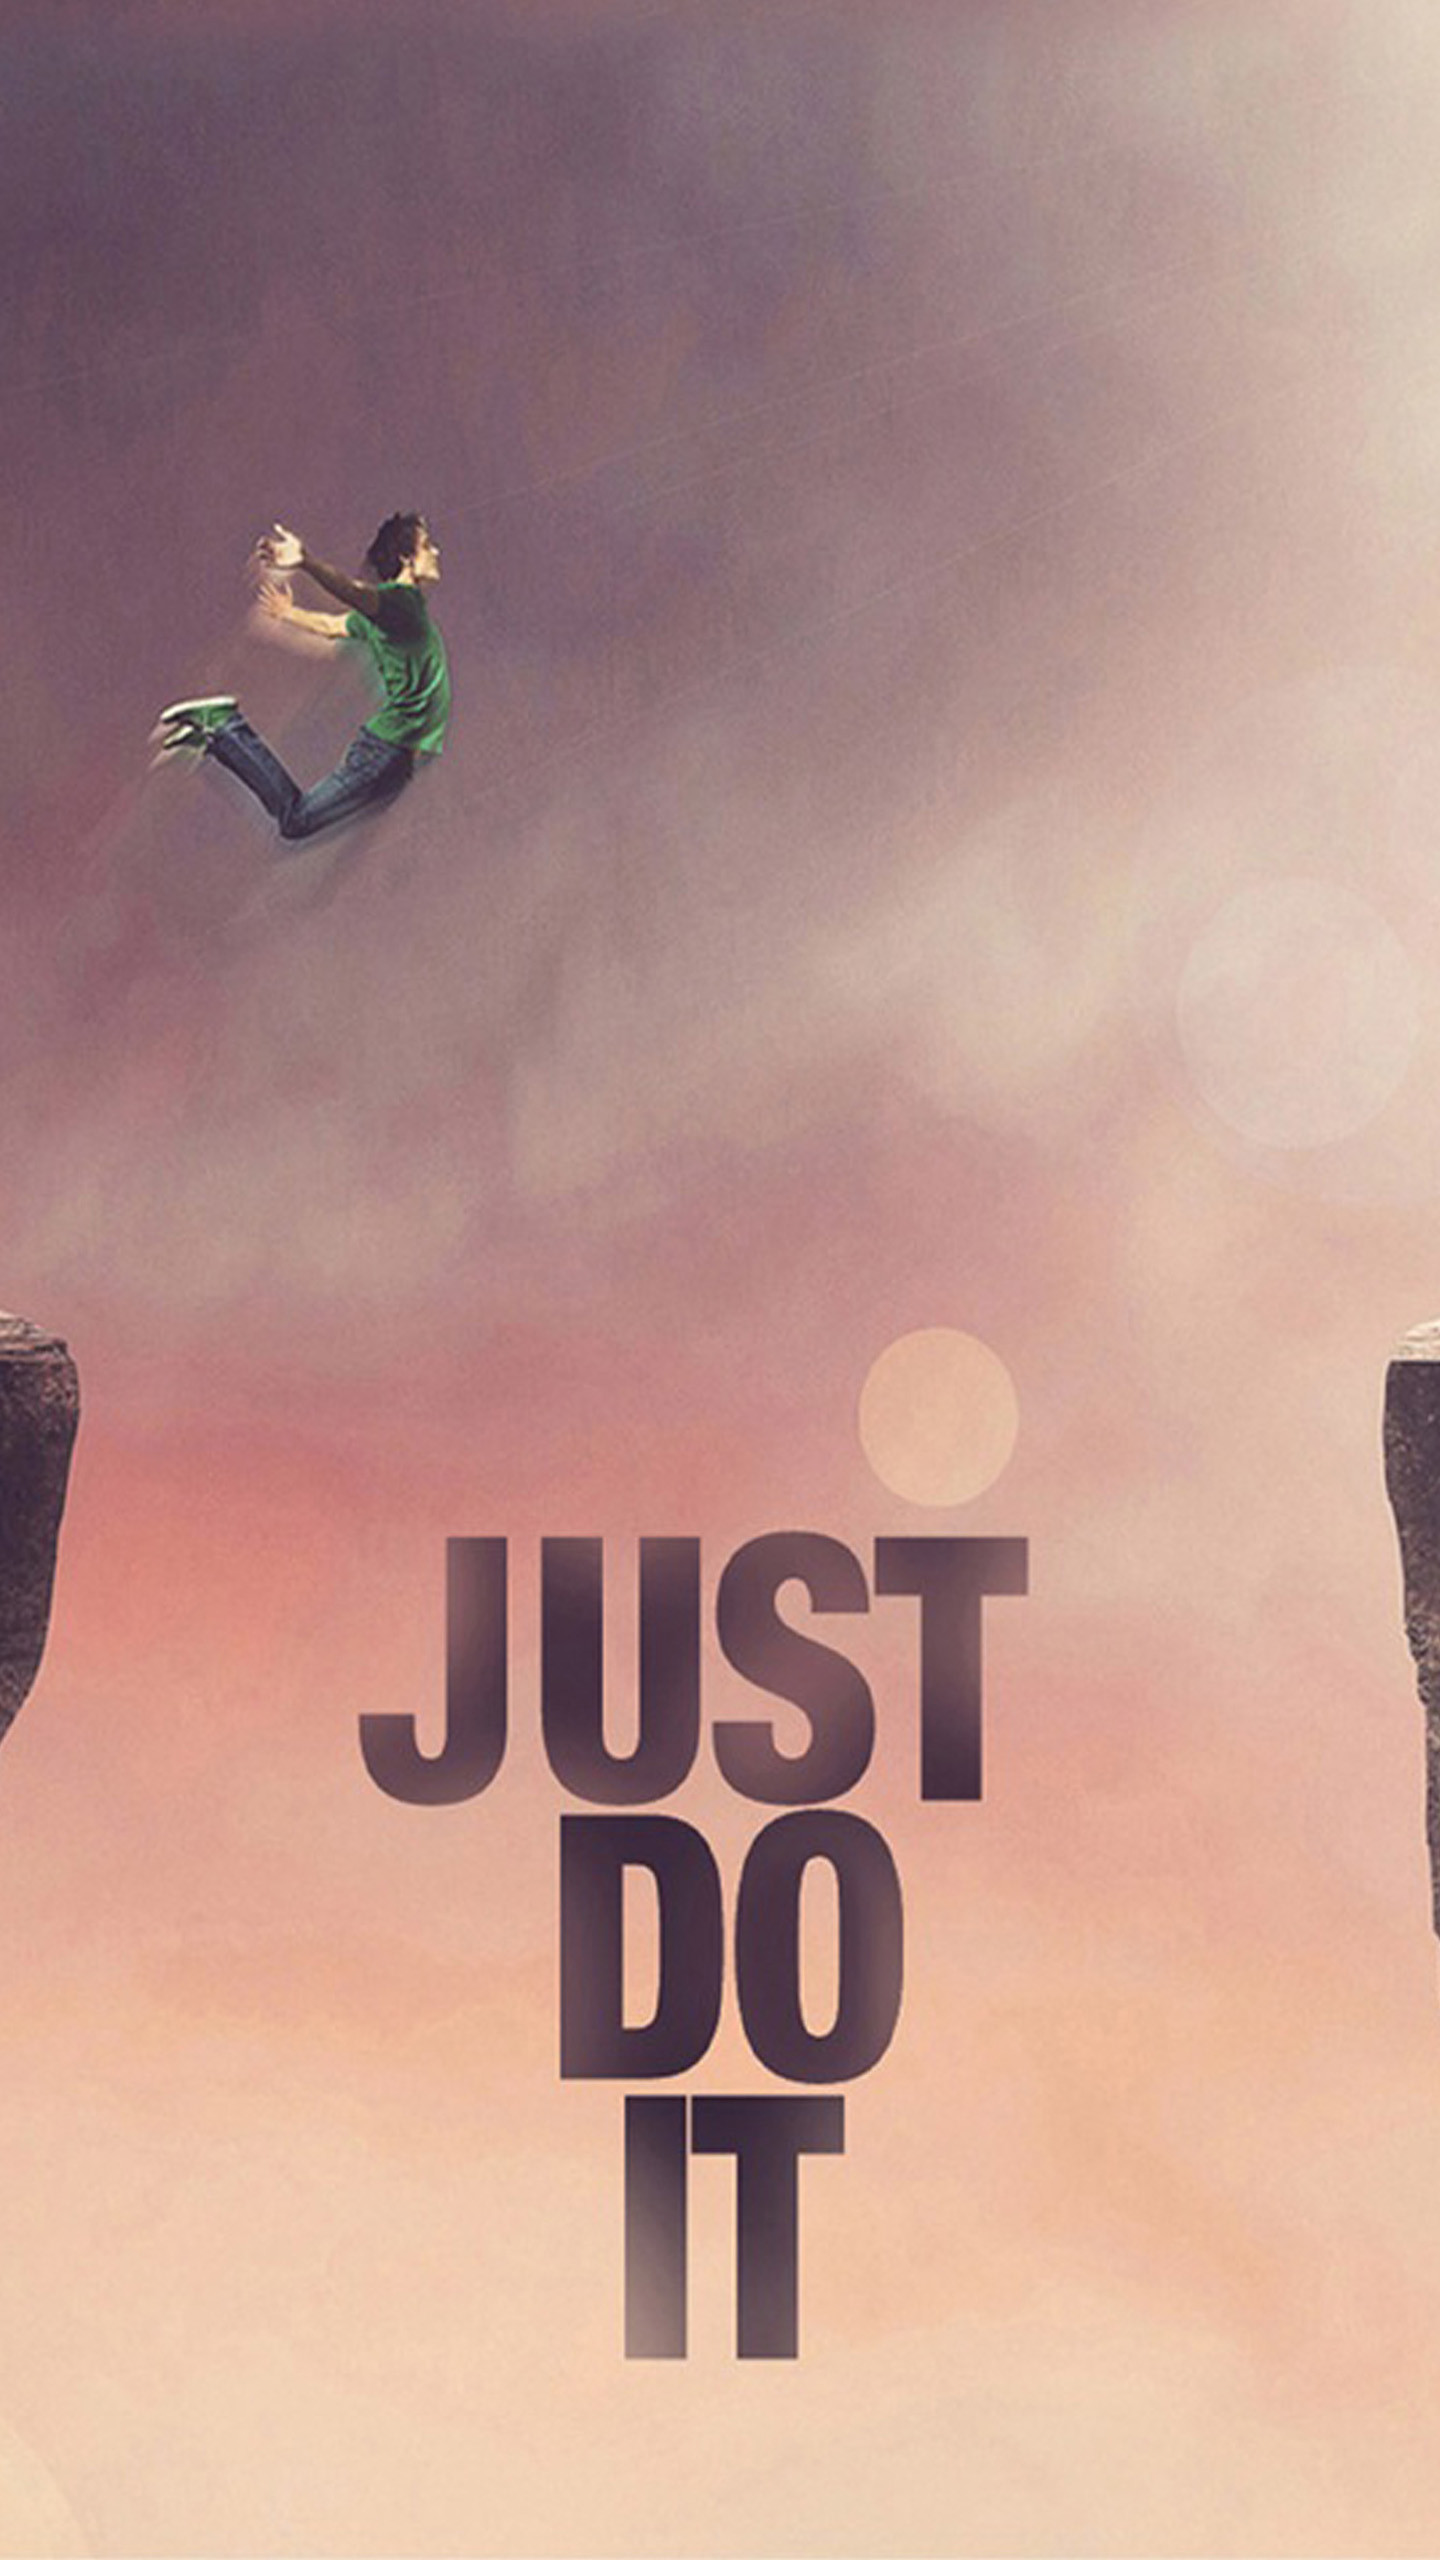 1440x2560 Just Do It Wallpaper – Wallpaper Free Download